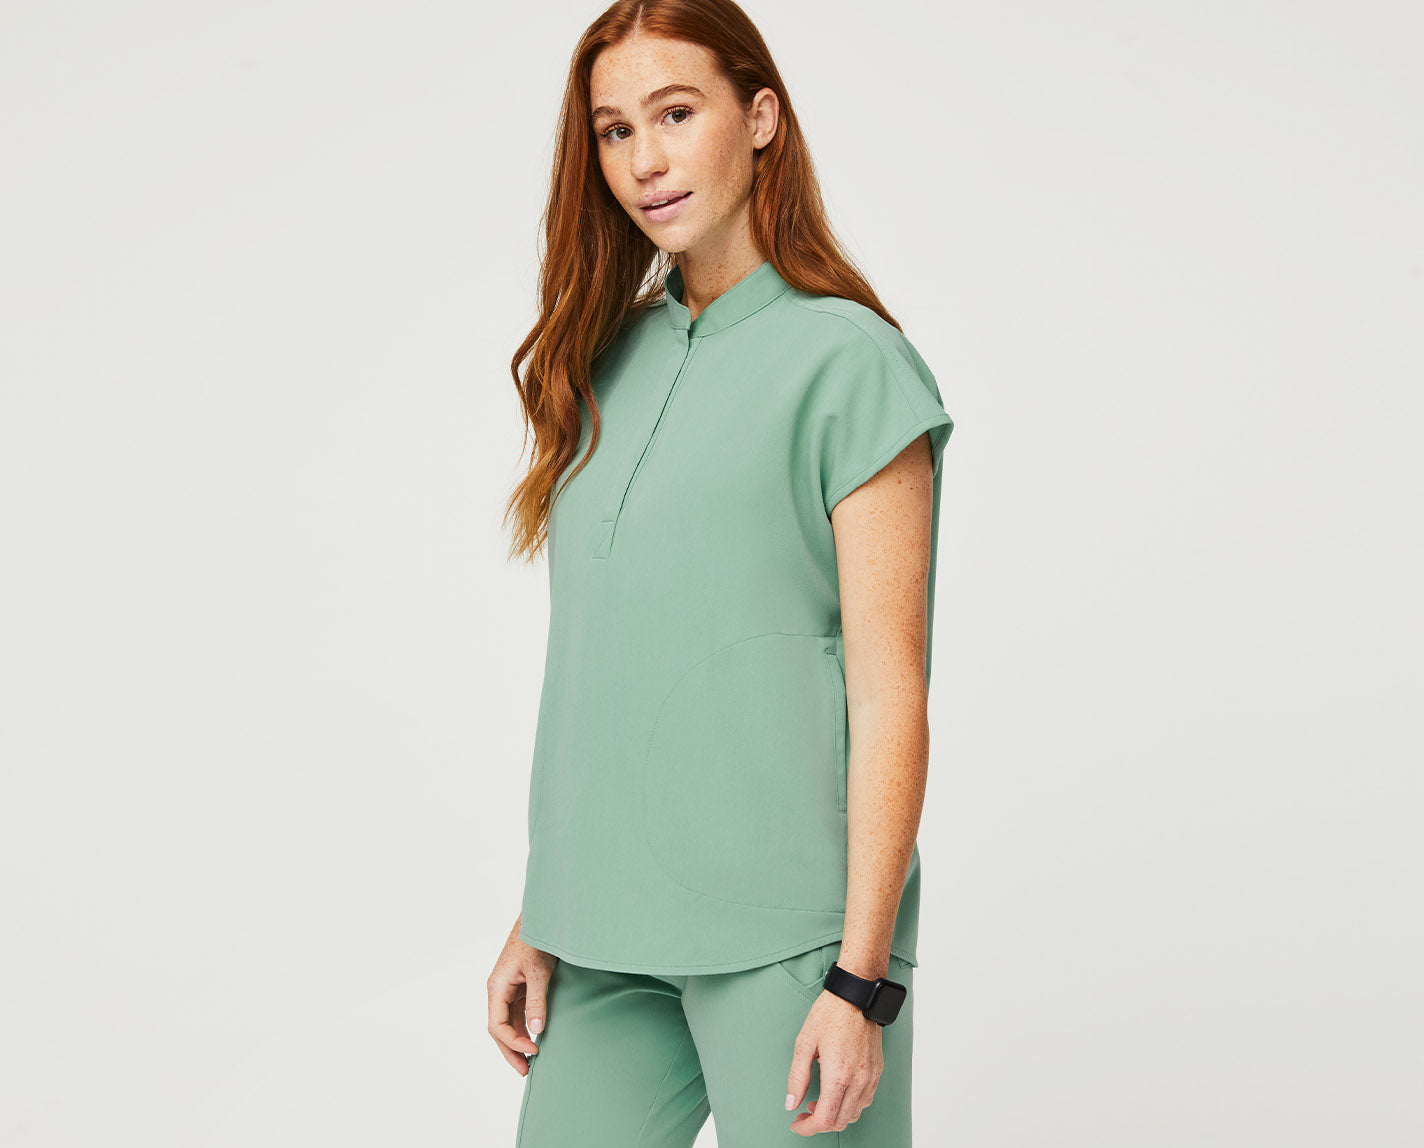 Modern design details AND super functional features?! Whoa. The Rafaela has a mandarin collar and shirttail hem, along with multiple pockets, an oversized fit that allows for easy movement and our proprietary FIONx fabric.